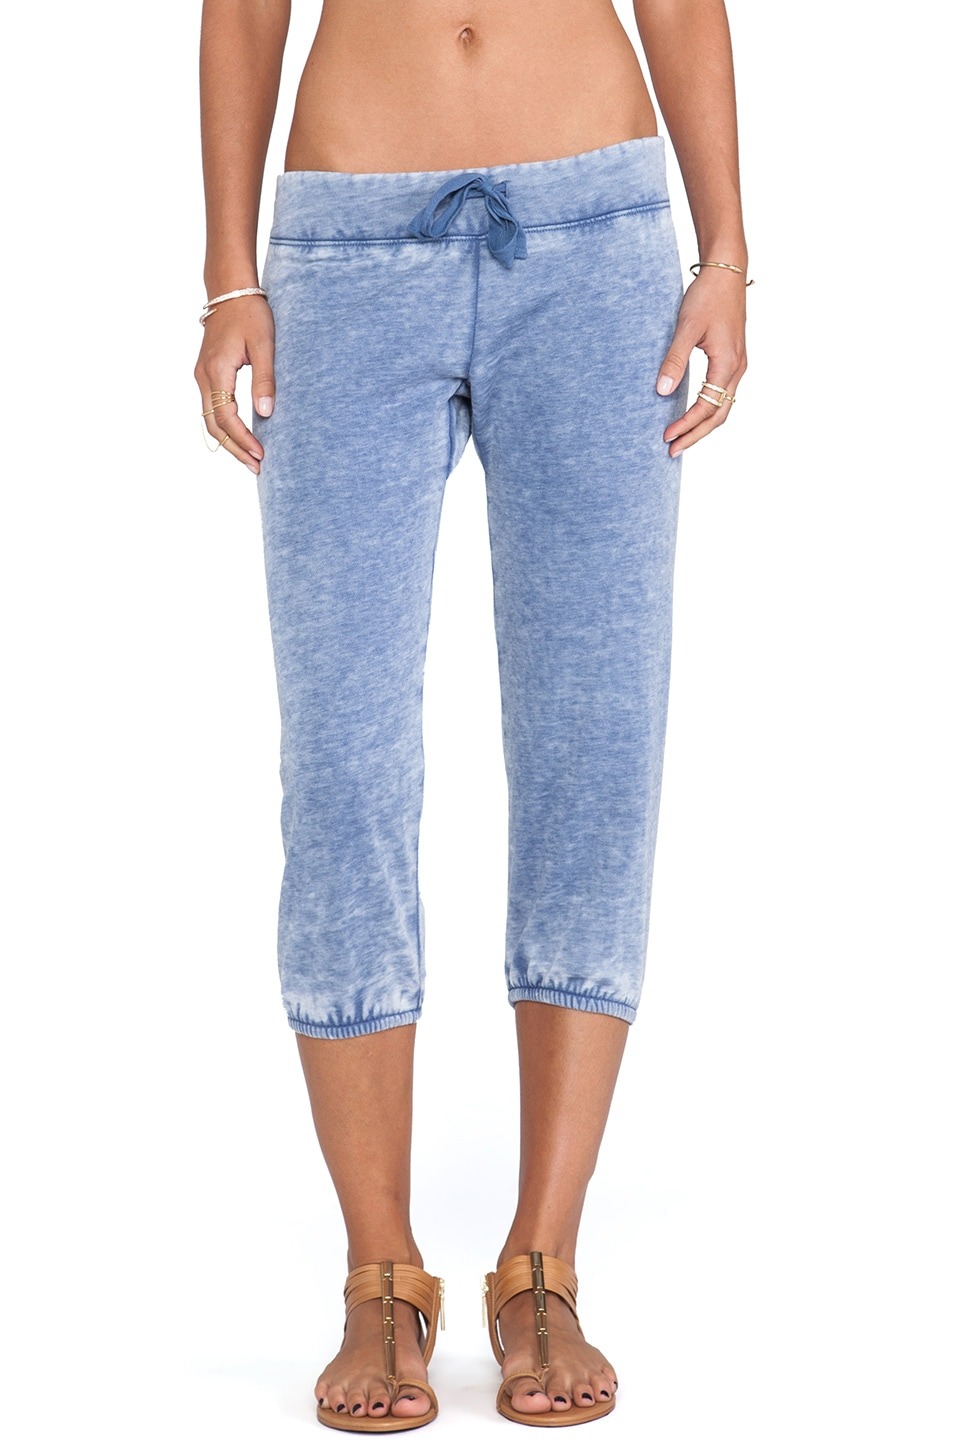 Bobi Enzyme Washed Sweatpants in Blue